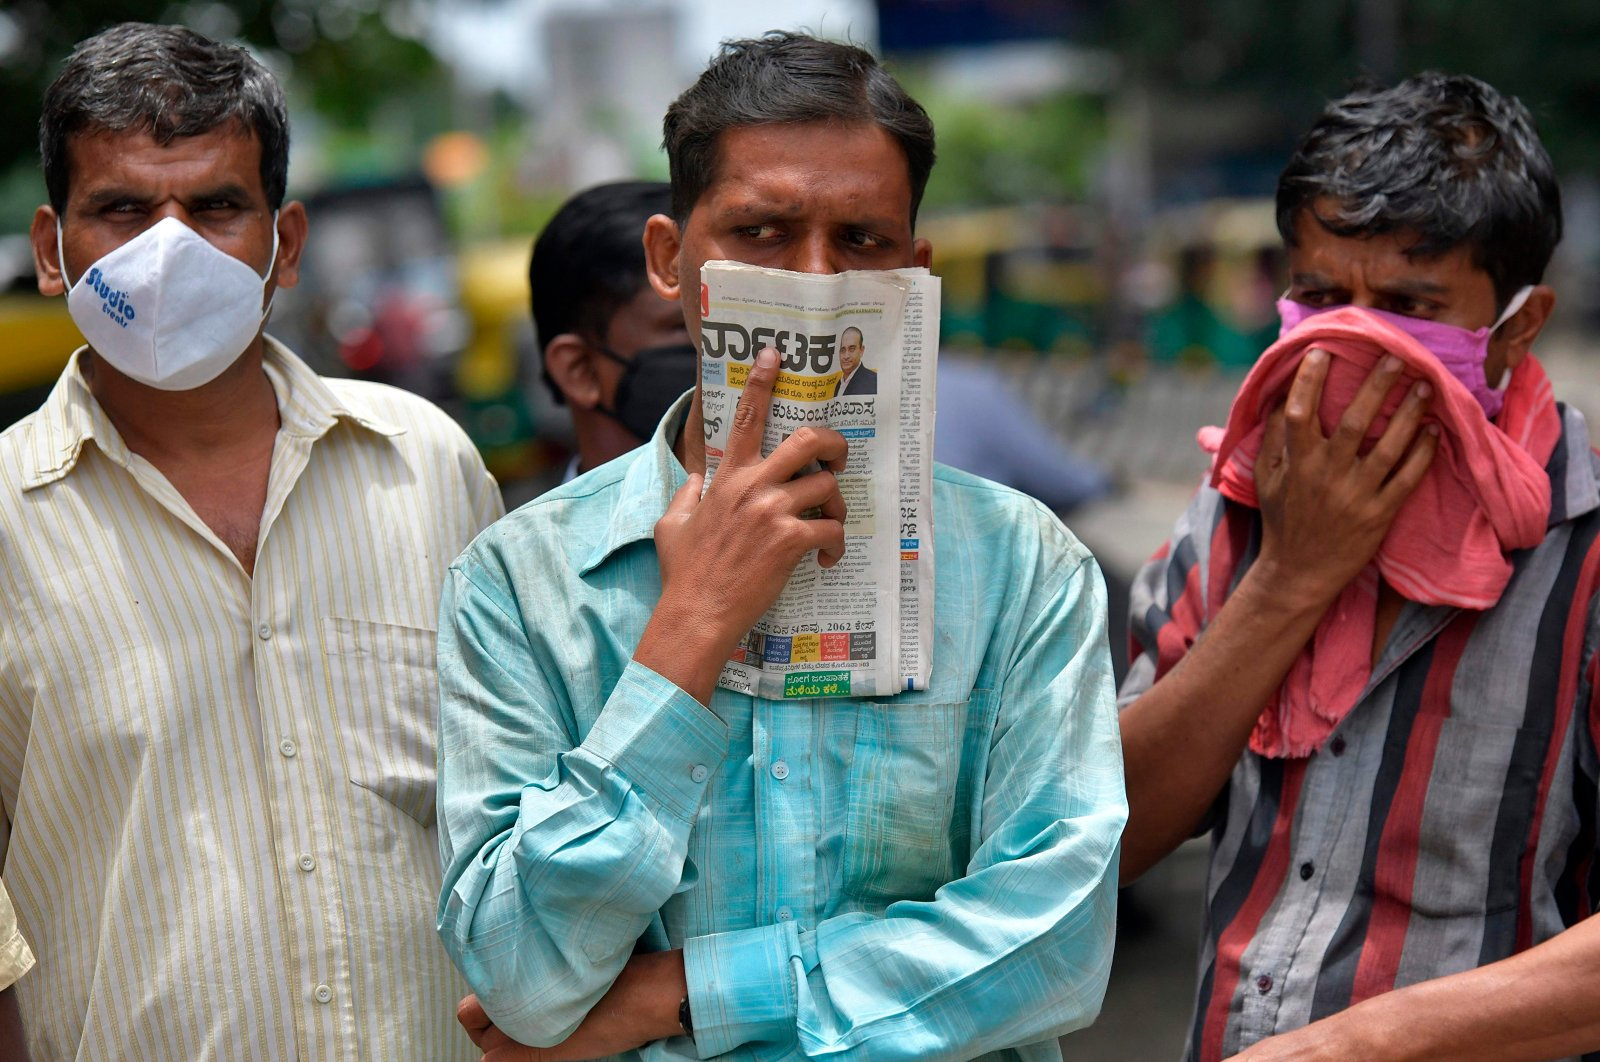 A man holds a newspaper to cover his face in the absence of his face mask during the coronavirus pandemic, in Bangalore, India, July 9, 2020. (AFP Photo)